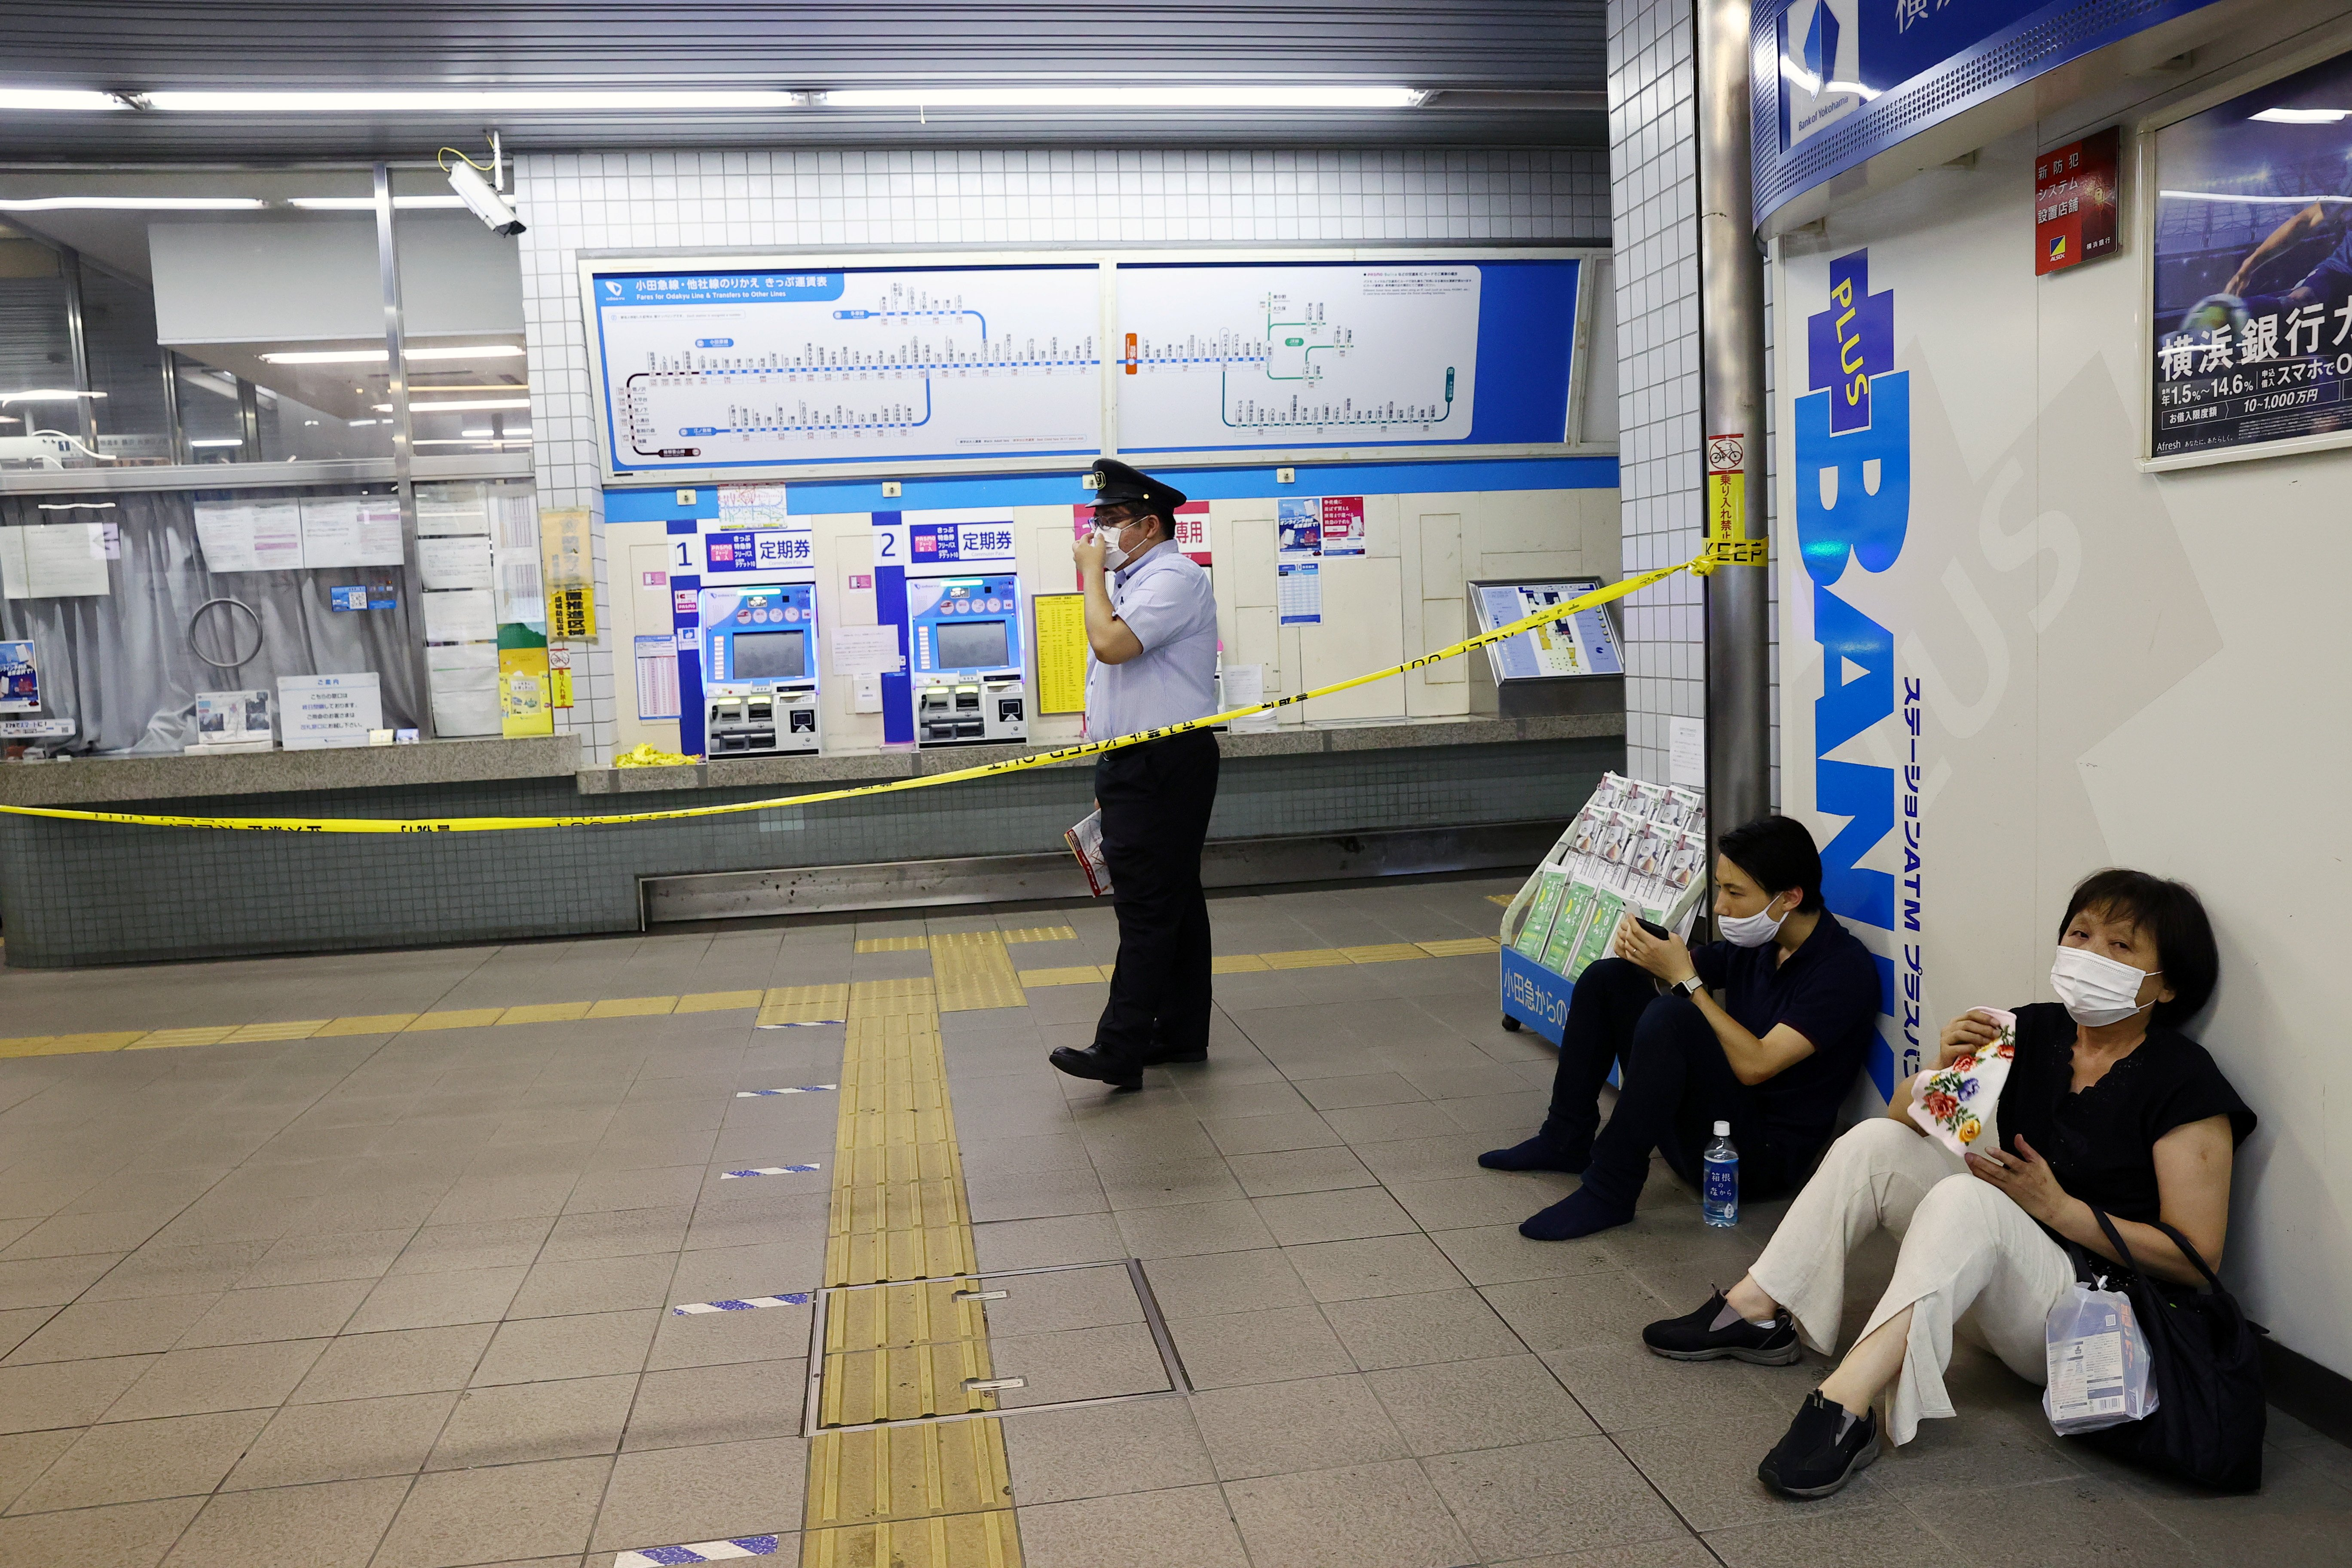 Man arrested after injuring 10 with knife on Tokyo train